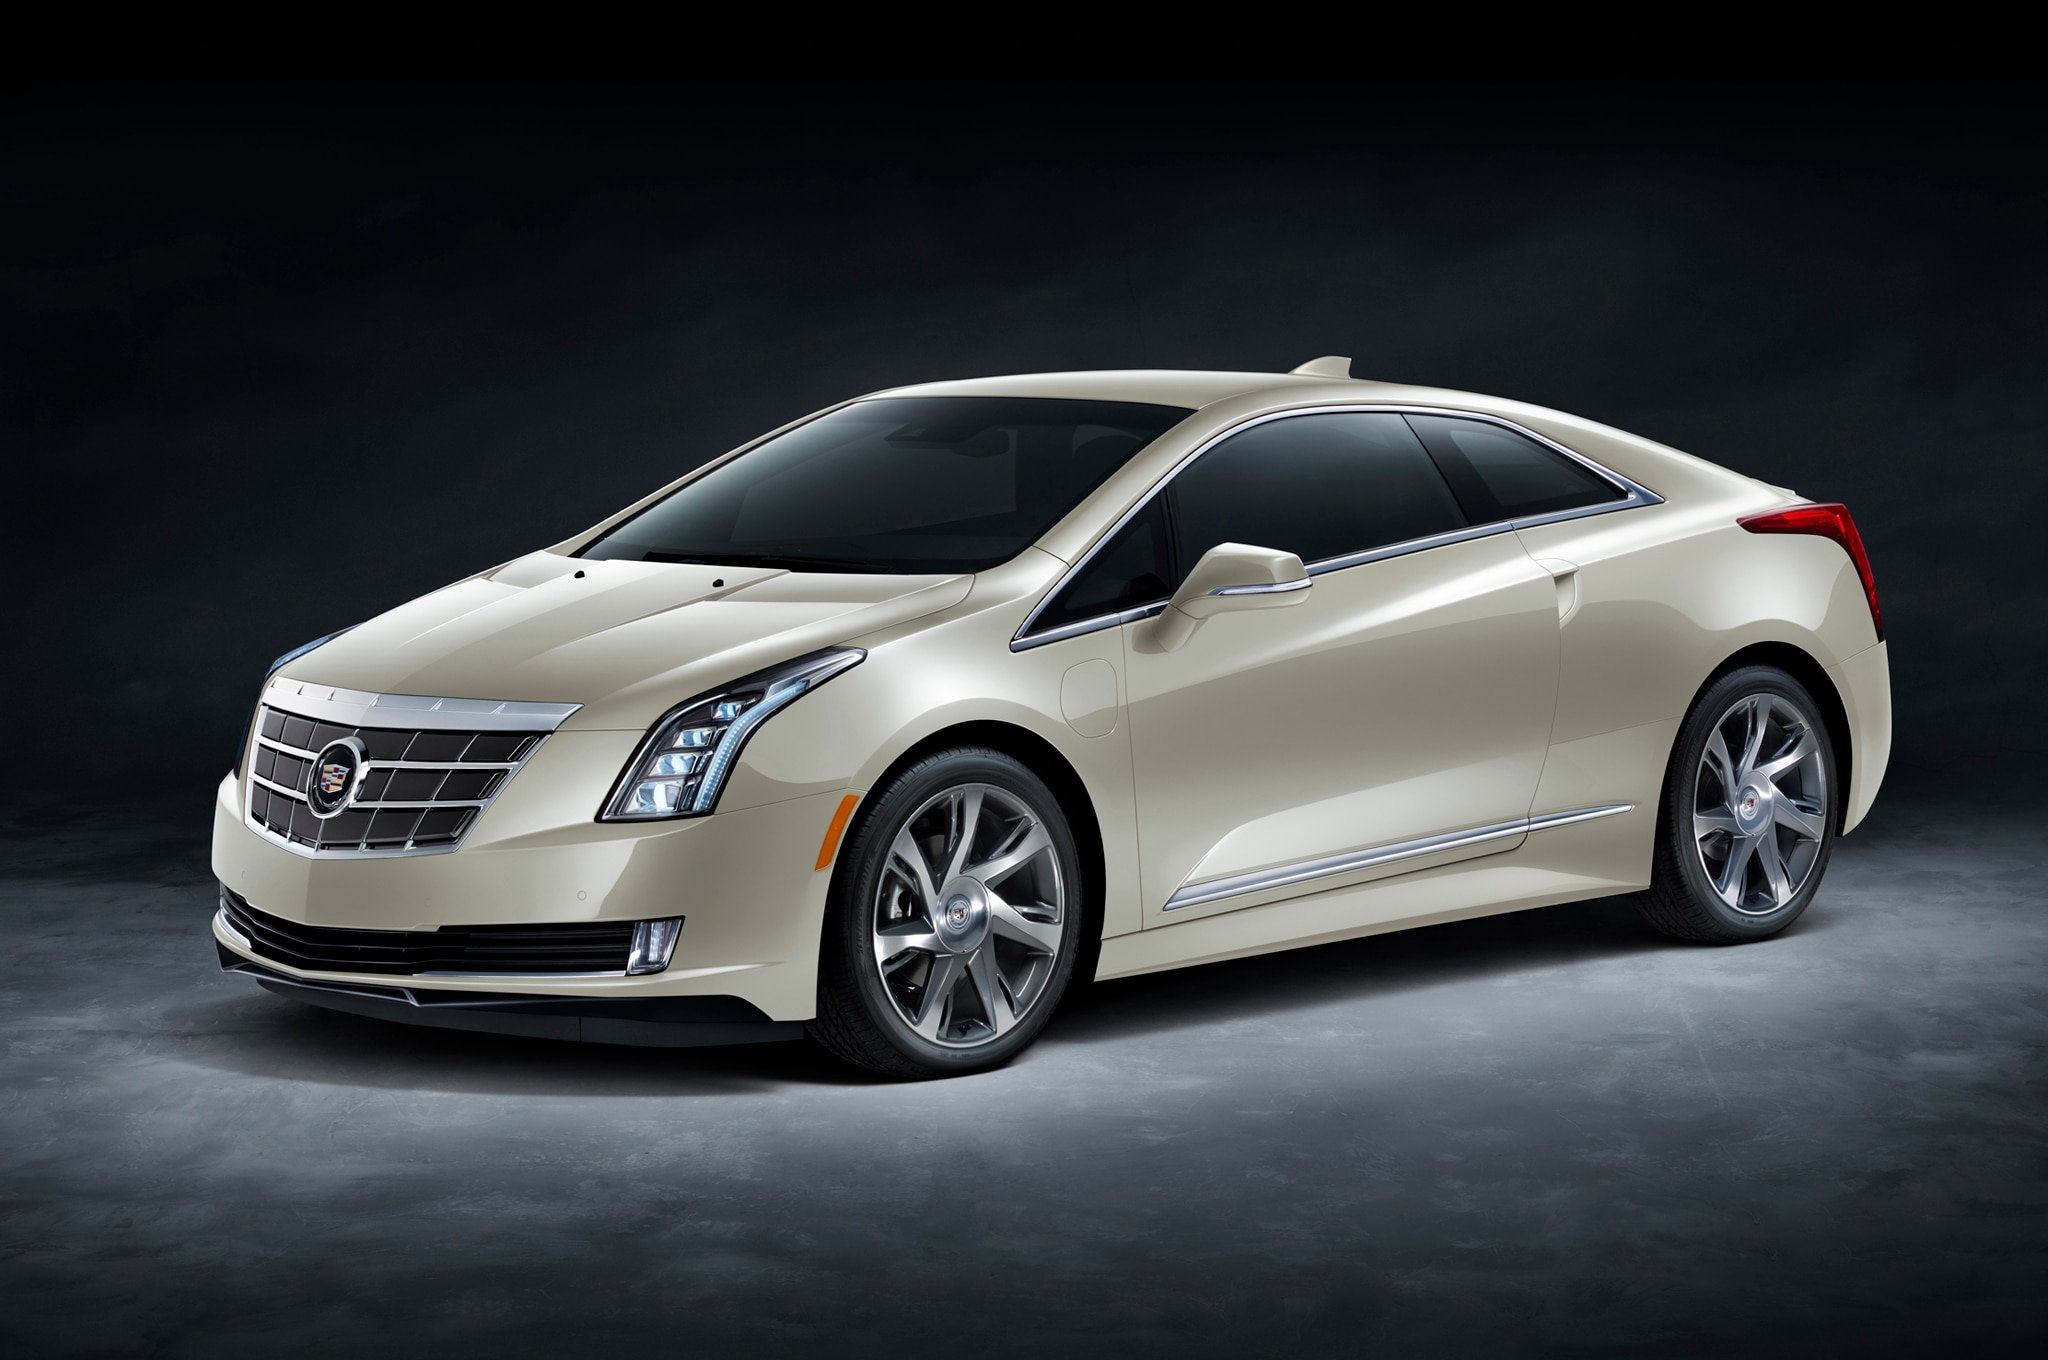 2014 Cadillac Elr Saks Fifth Ave Edition1